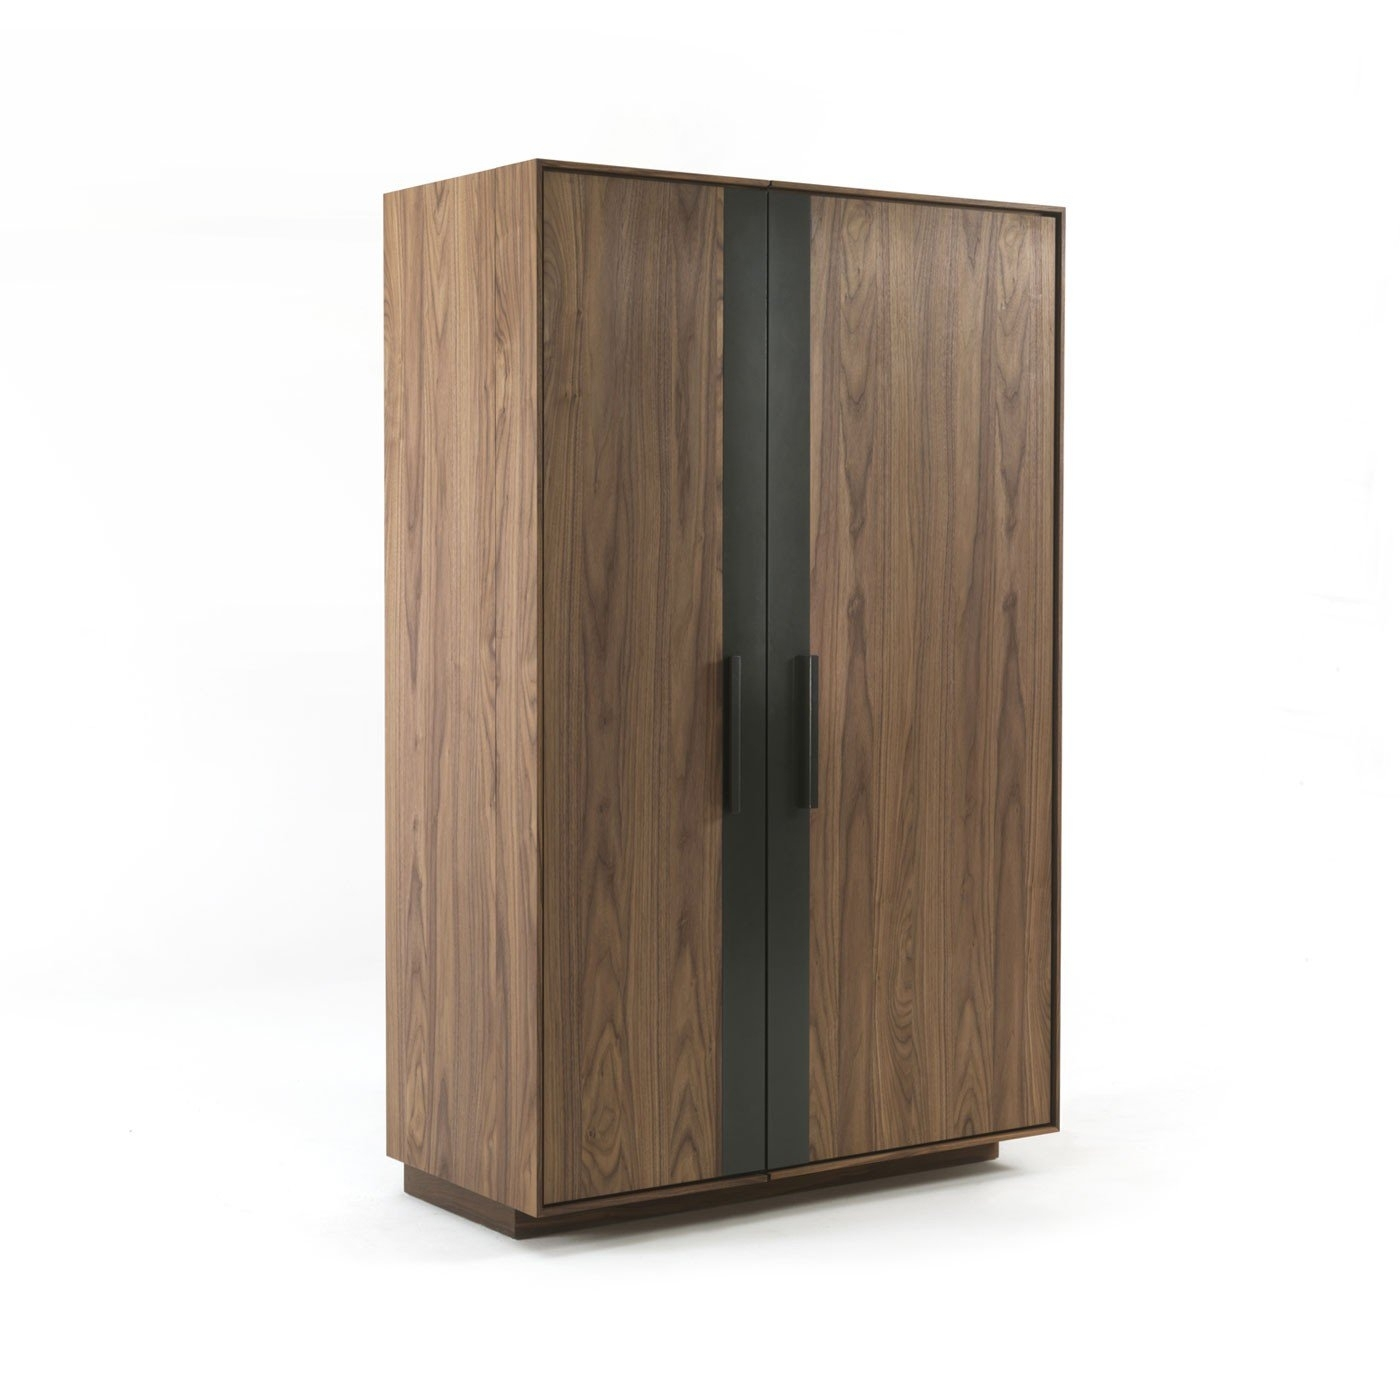 Inspiration about Riva 1920 Cambusa Wine Cabinet Walnut | Heal's Pertaining To Latest Charcoal Finish 4 Door Jumbo Sideboards (#2 of 20)